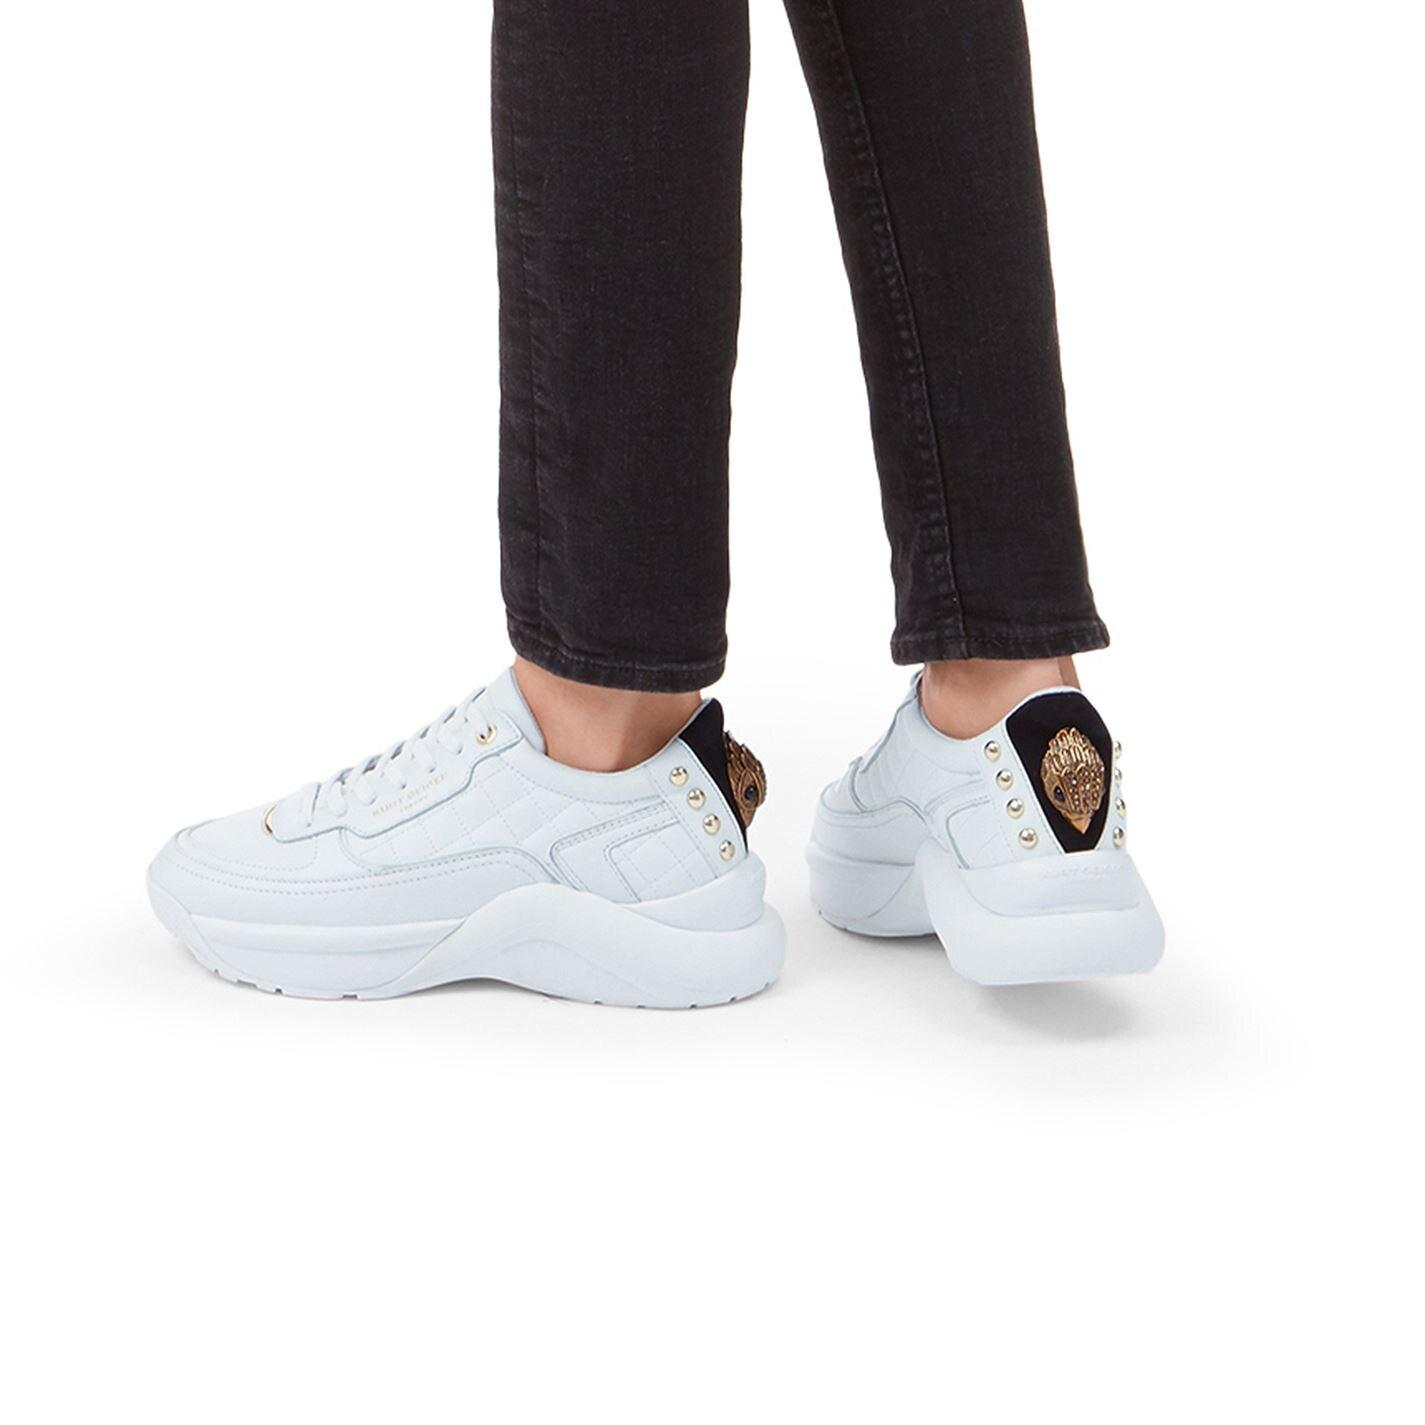 Lunar Eagle Trainers in White